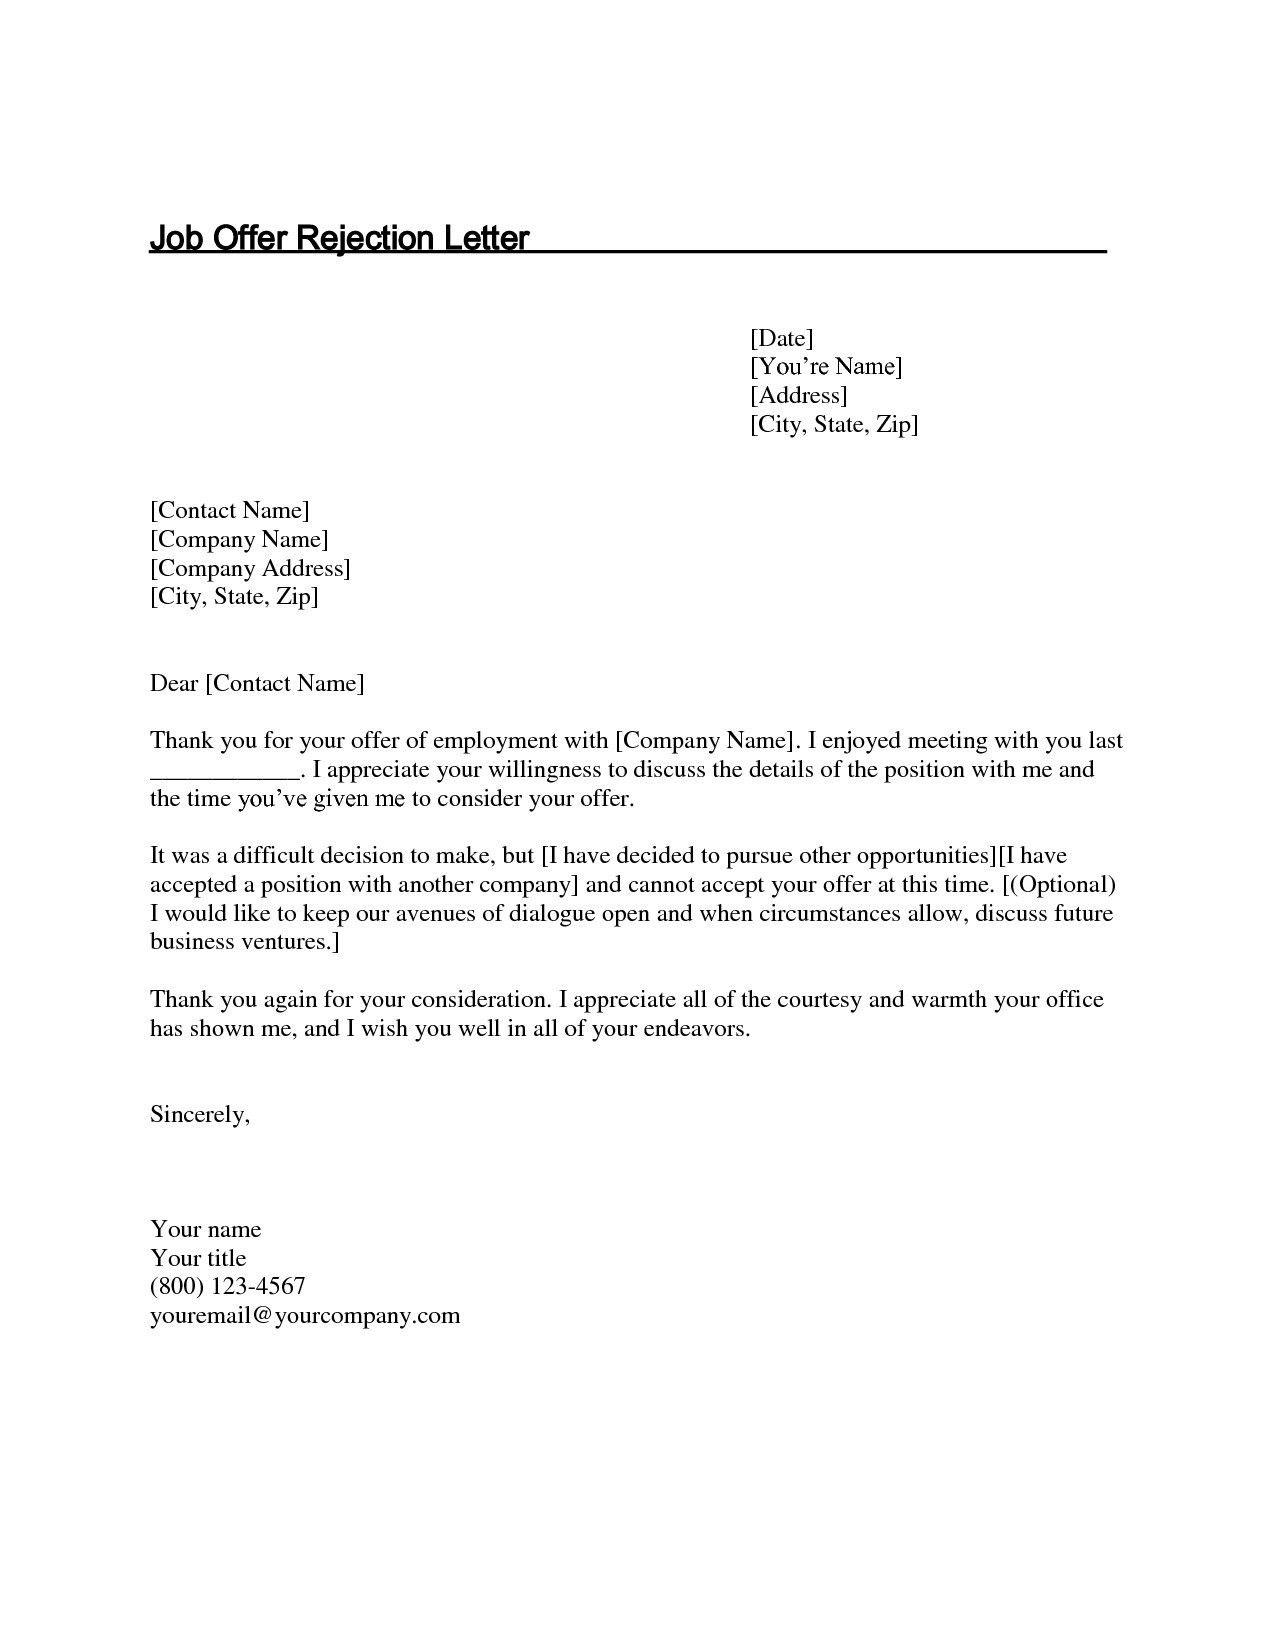 download fresh job decline thank you letter lettersample mechanical sales engineer resume email to send cv example associate professional summary